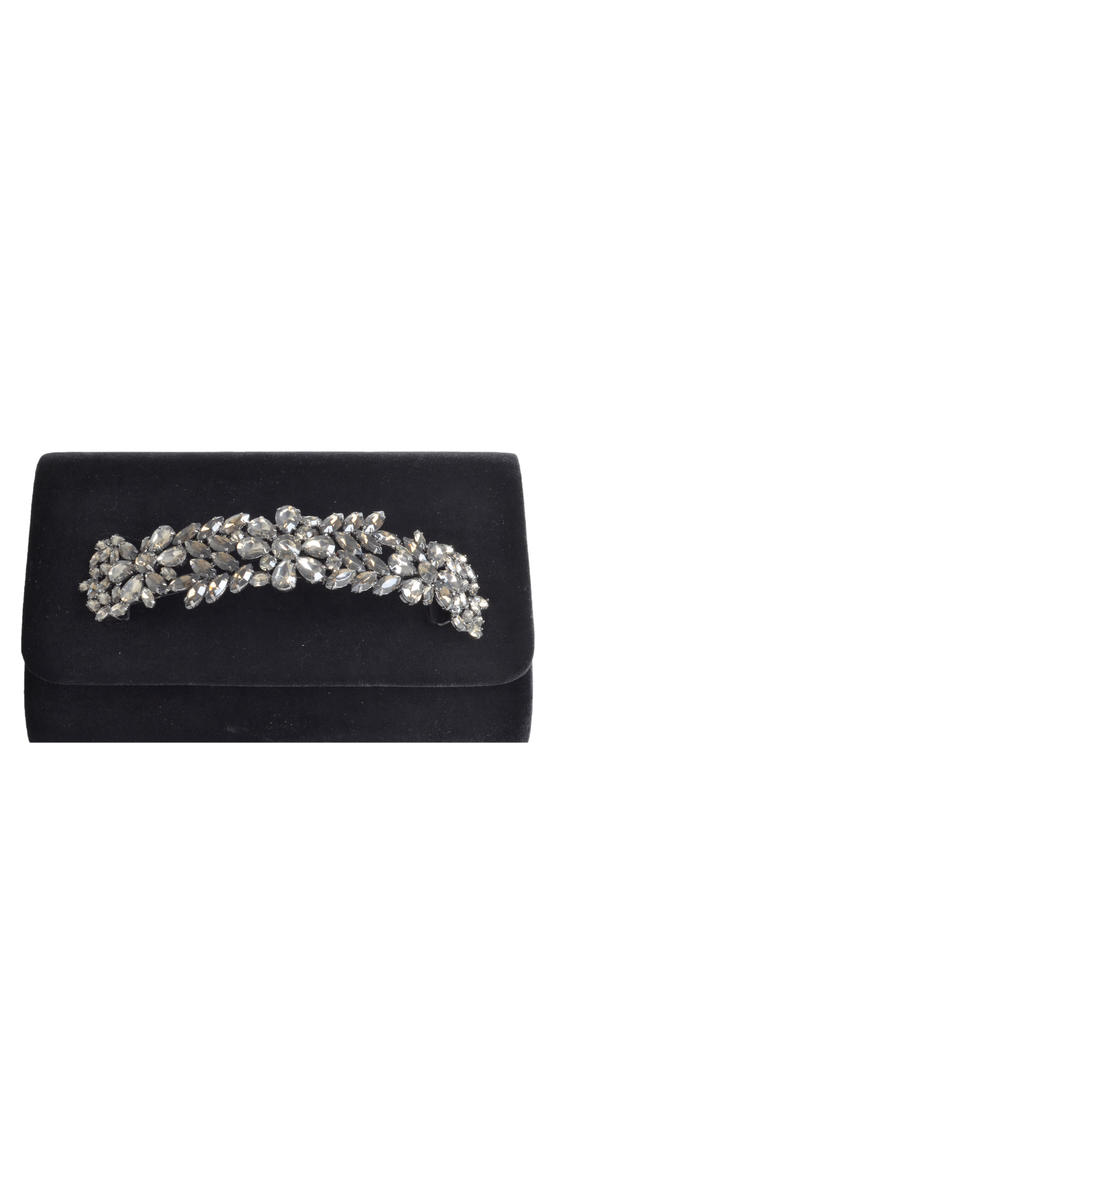 Jeweled Bar Clutch  Crushed Velvet